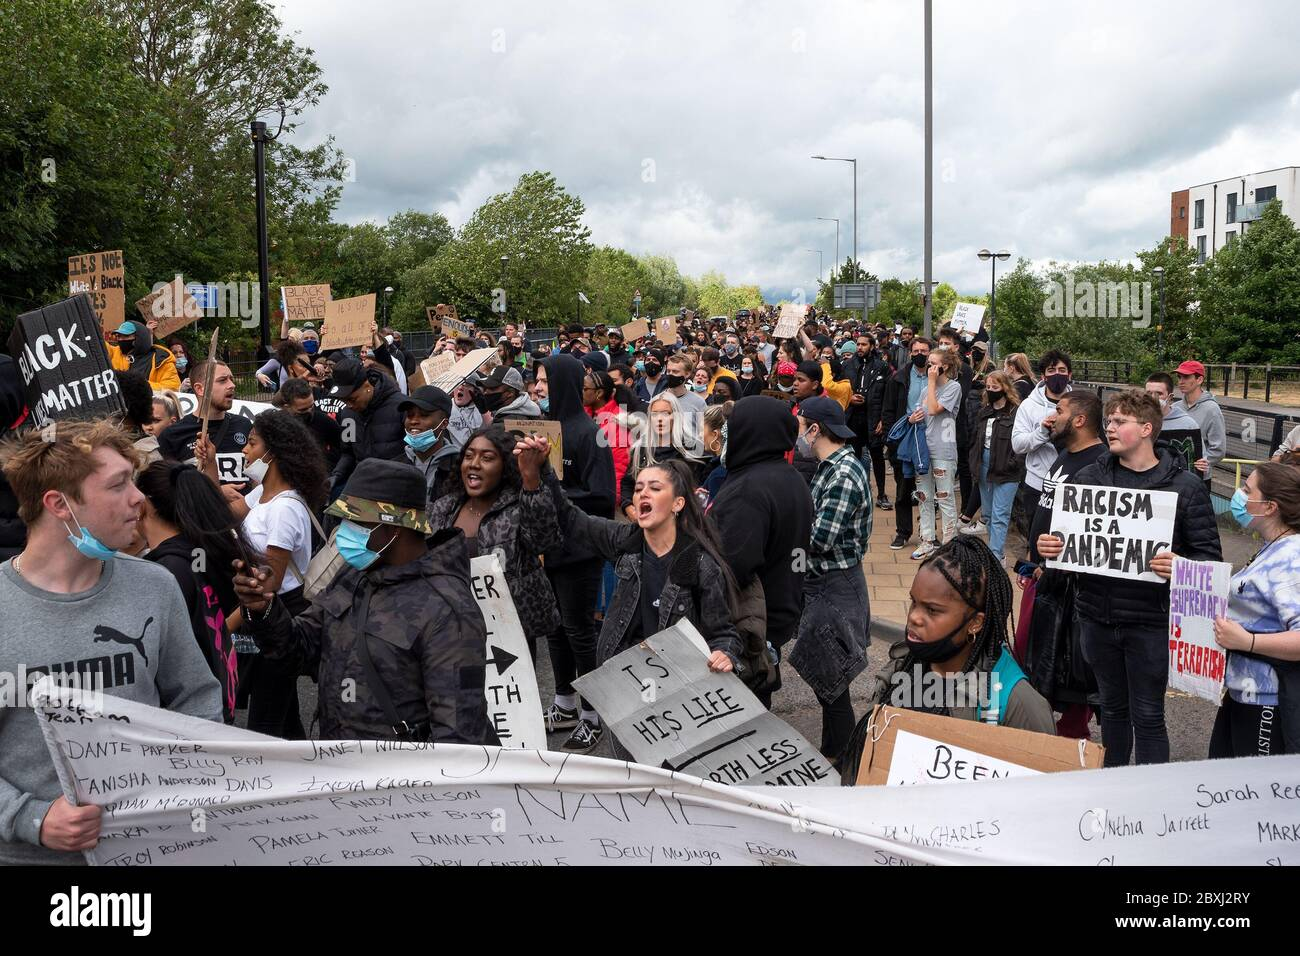 aylesbury-uk-6th-june-2020-aylesbury-black-lives-matter-march-in-response-to-the-recent-death-of-george-floyd-in-minneapolis-who-died-when-a-police-officer-continuously-knelt-on-his-neck-until-he-died-the-march-route-had-been-agreed-with-the-police-around-a-1000-demonstrators-marched-carrying-placards-and-chanting-the-march-started-from-watermead-and-finished-in-the-town-centre-the-march-was-organised-by-local-residents-amari-jamz-and-hannah-lewis-head-of-the-march-on-the-a418-oxford-road-credit-stephen-bellalamy-2BXJ2RY.jpg